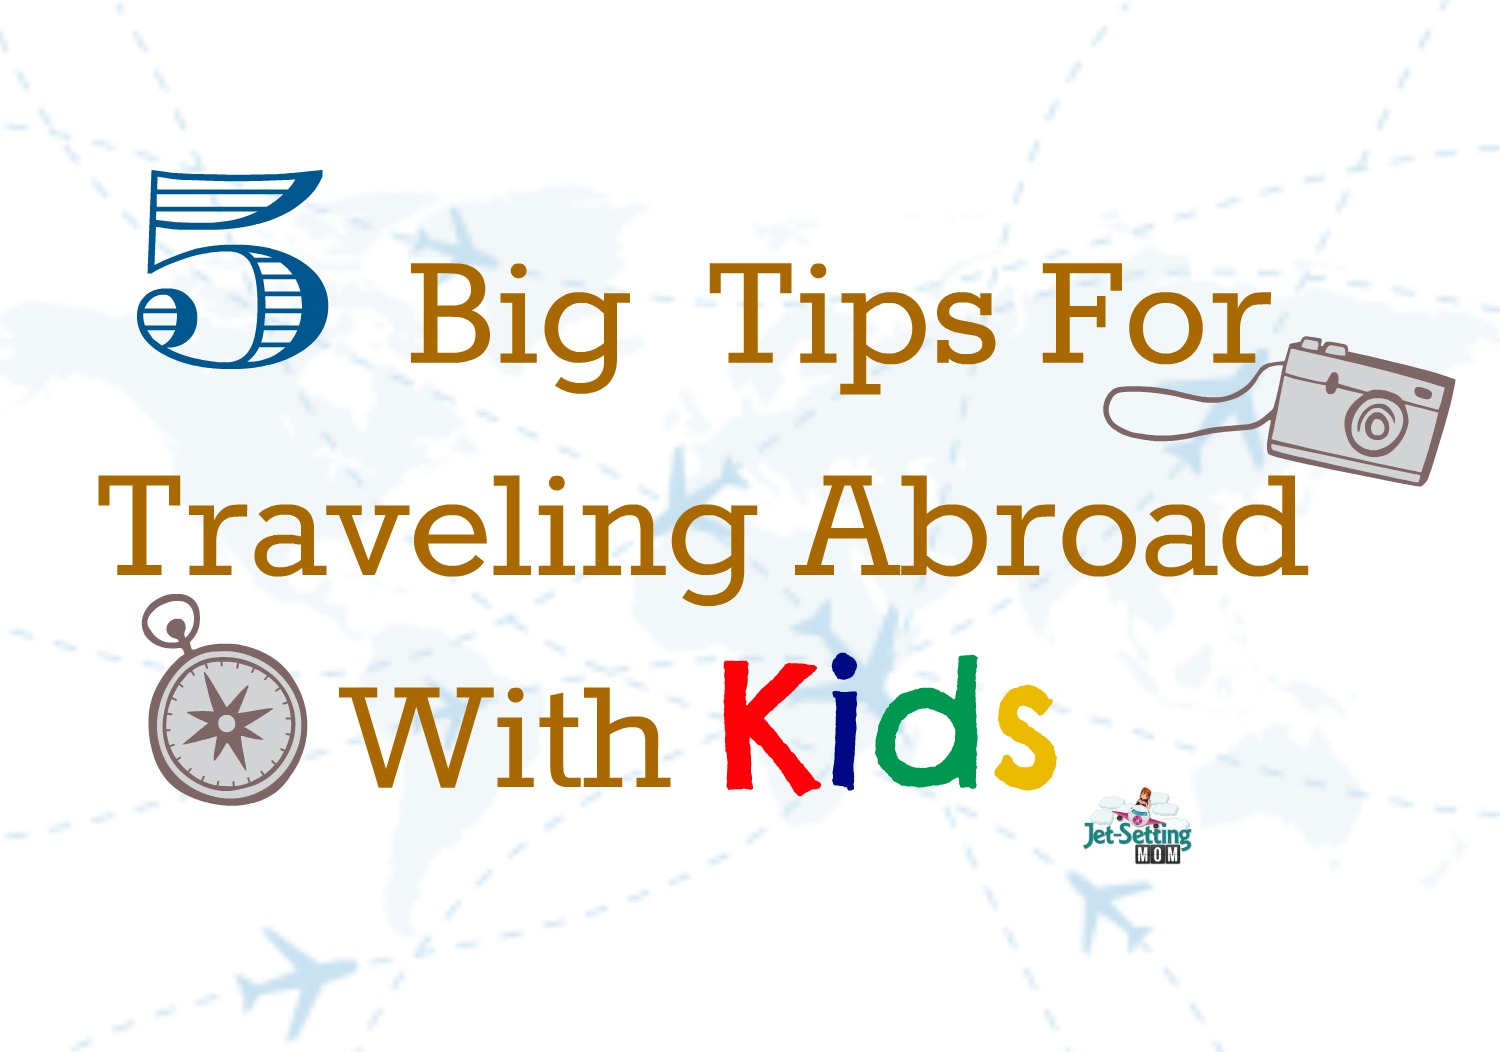 5 big tips for traveling abroad with kids. #travel #familytravel #familyadventures #kids #kidstravel #traveltips #kidtraveltips #internationaltravel #flyingwithkids